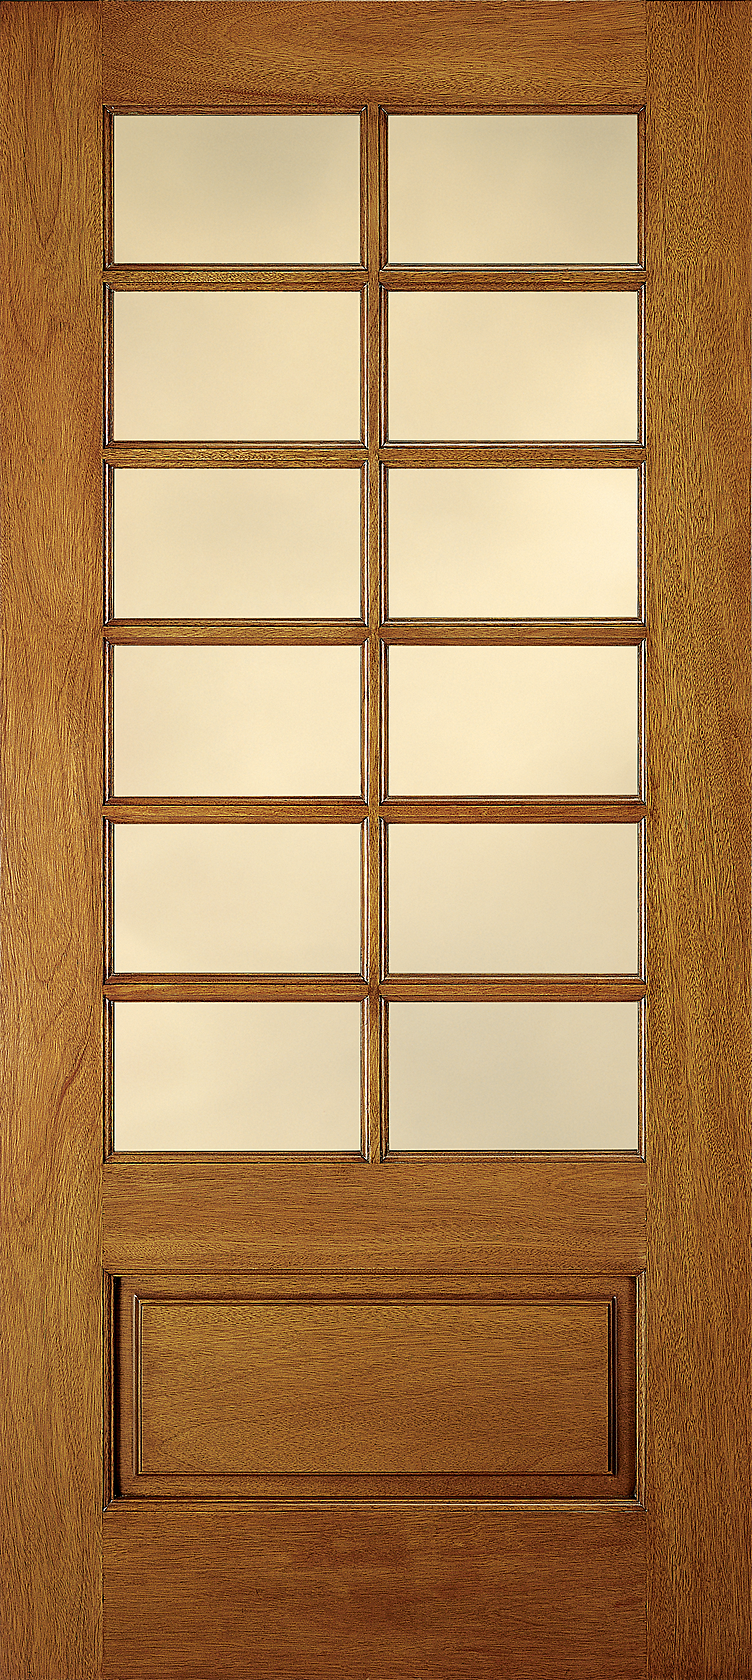 Custom Wood Glass Panel Interior Door Jeld Wen Windows Doors